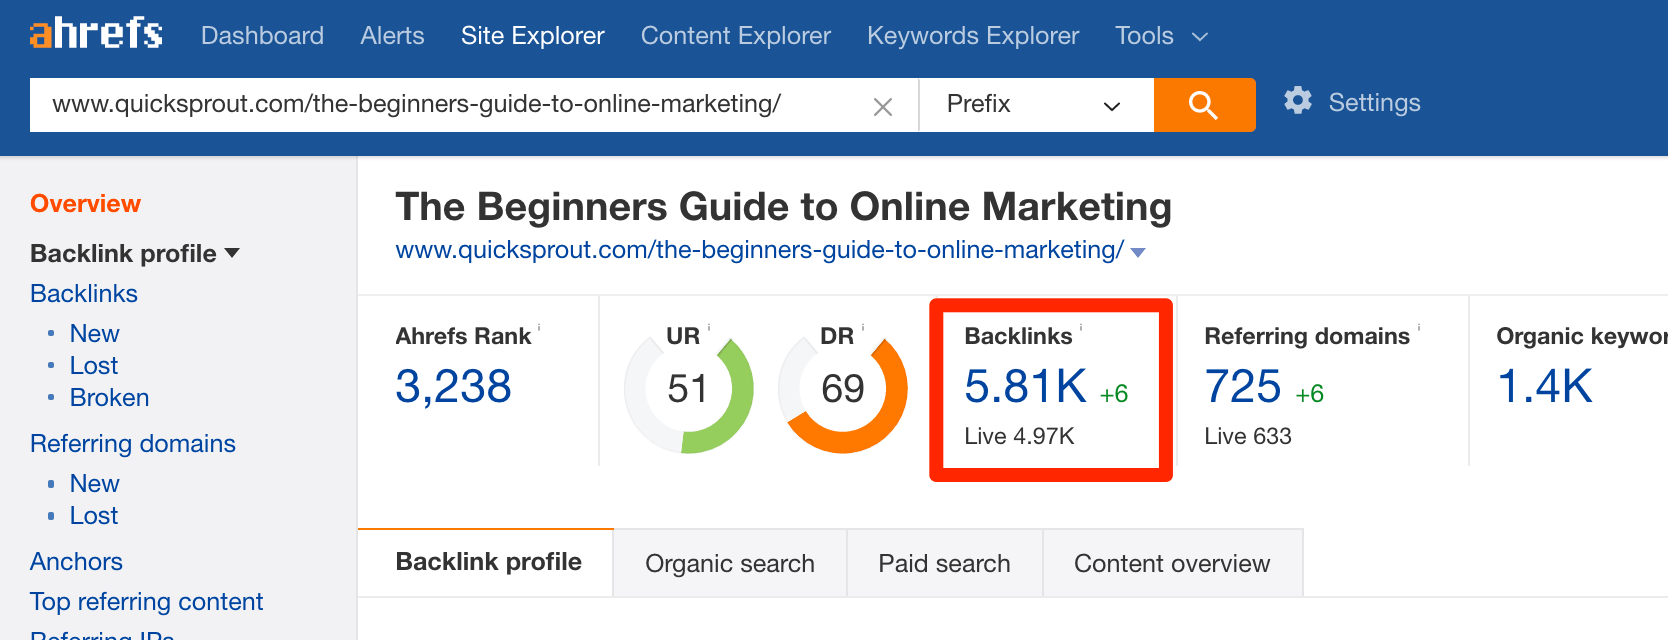 Ahrefs Backlinks Overview